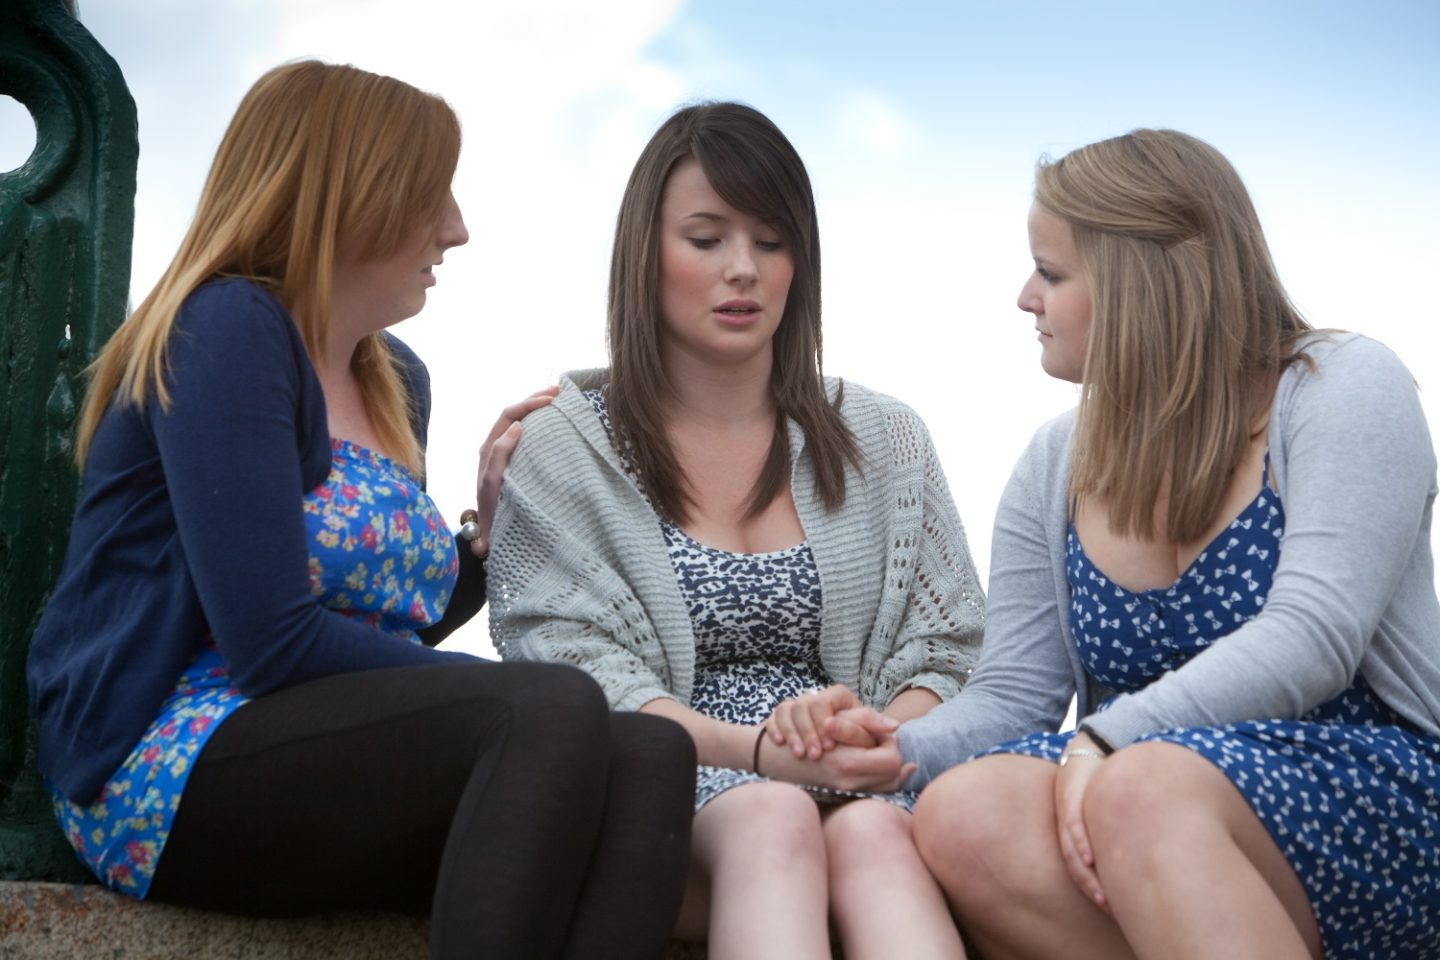 Three girls sitting together. Two of the girls are consoling the other and holding her hands.